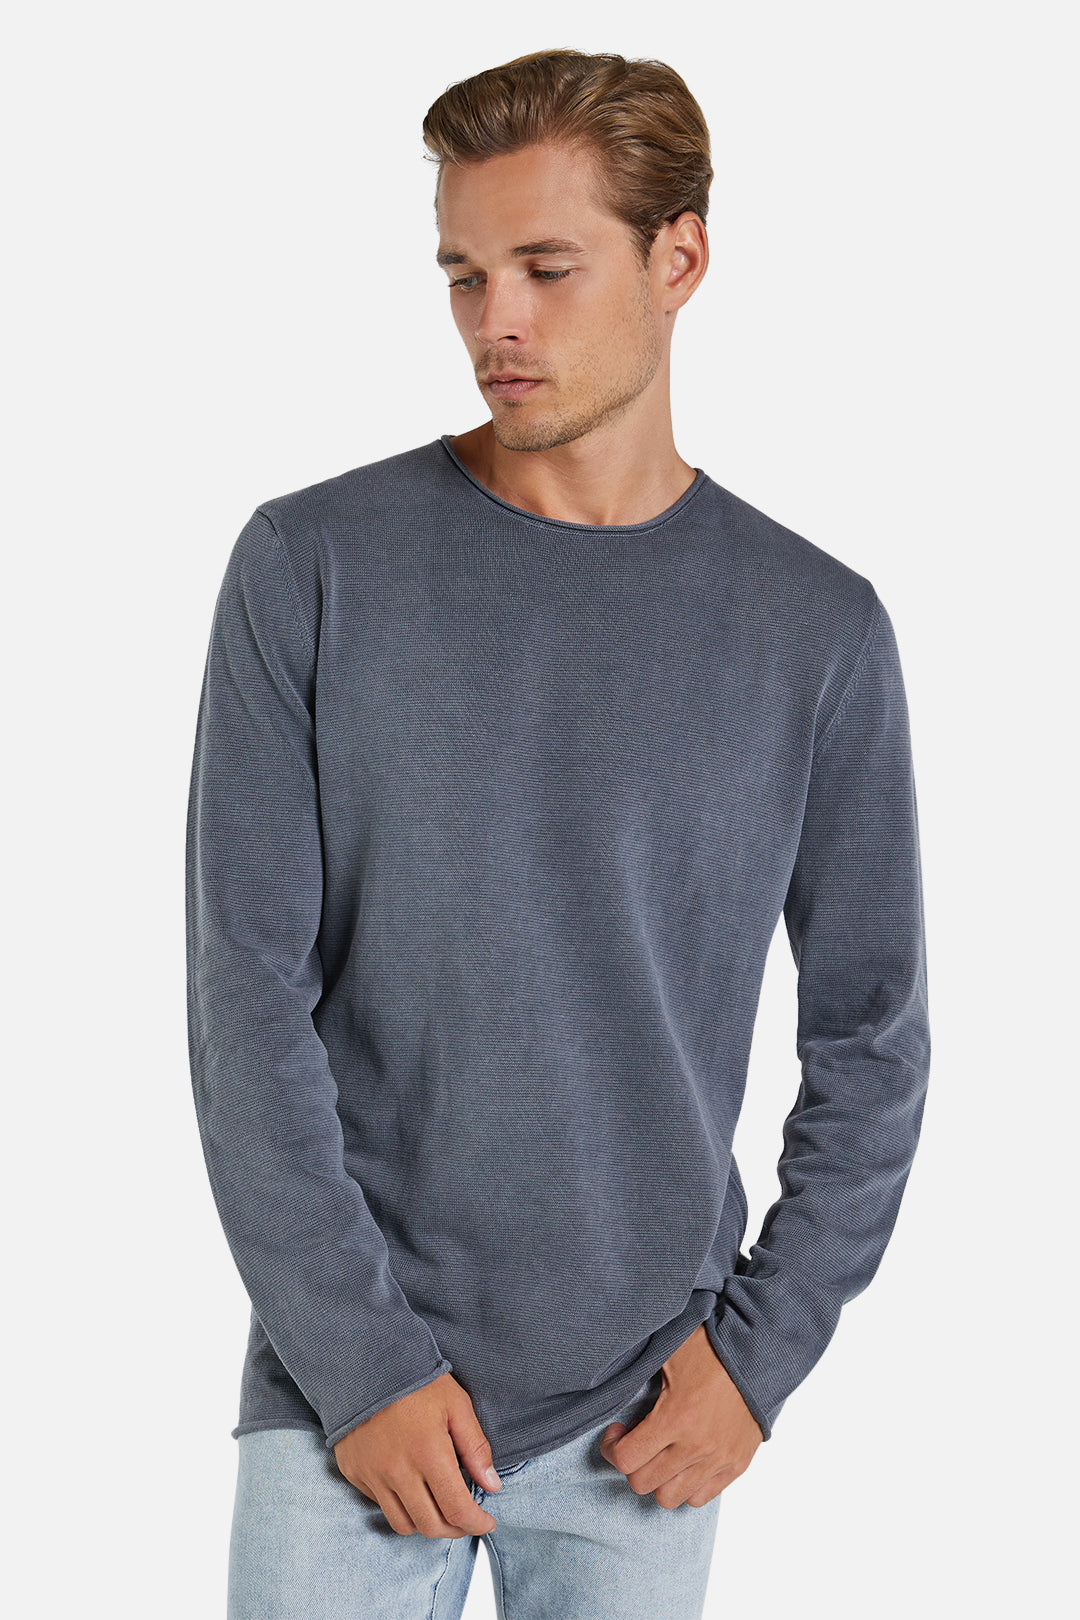 The Delmar Knit - Slate